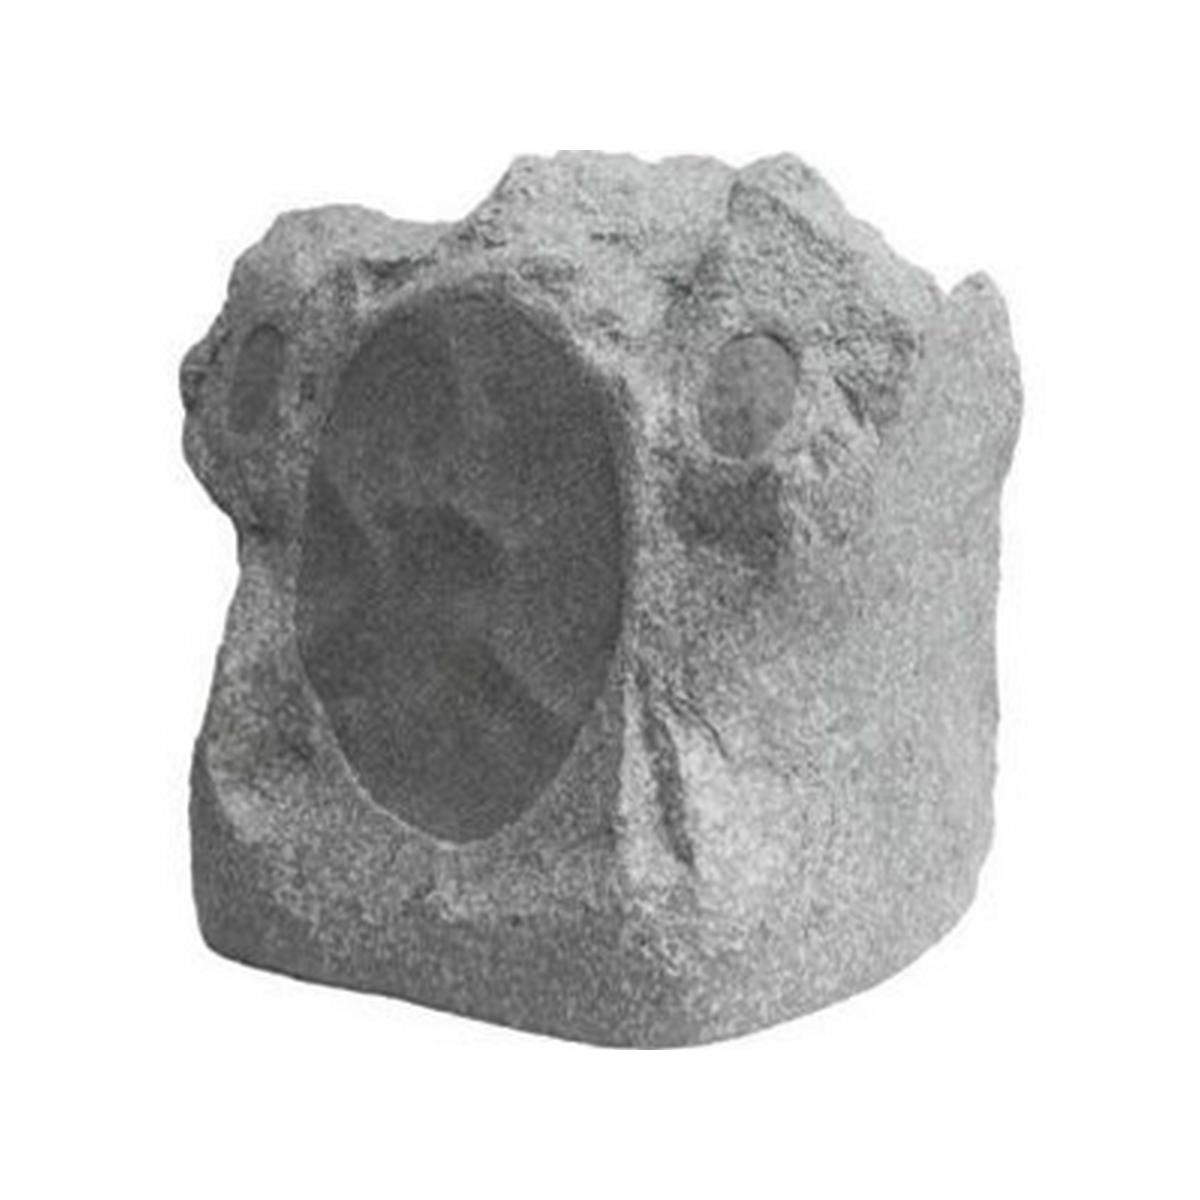 Niles RS8SIPRO SPECKLED GRANITE High Performance Rock Loudspeaker; 8-in. 2-Way-Speckled Granite